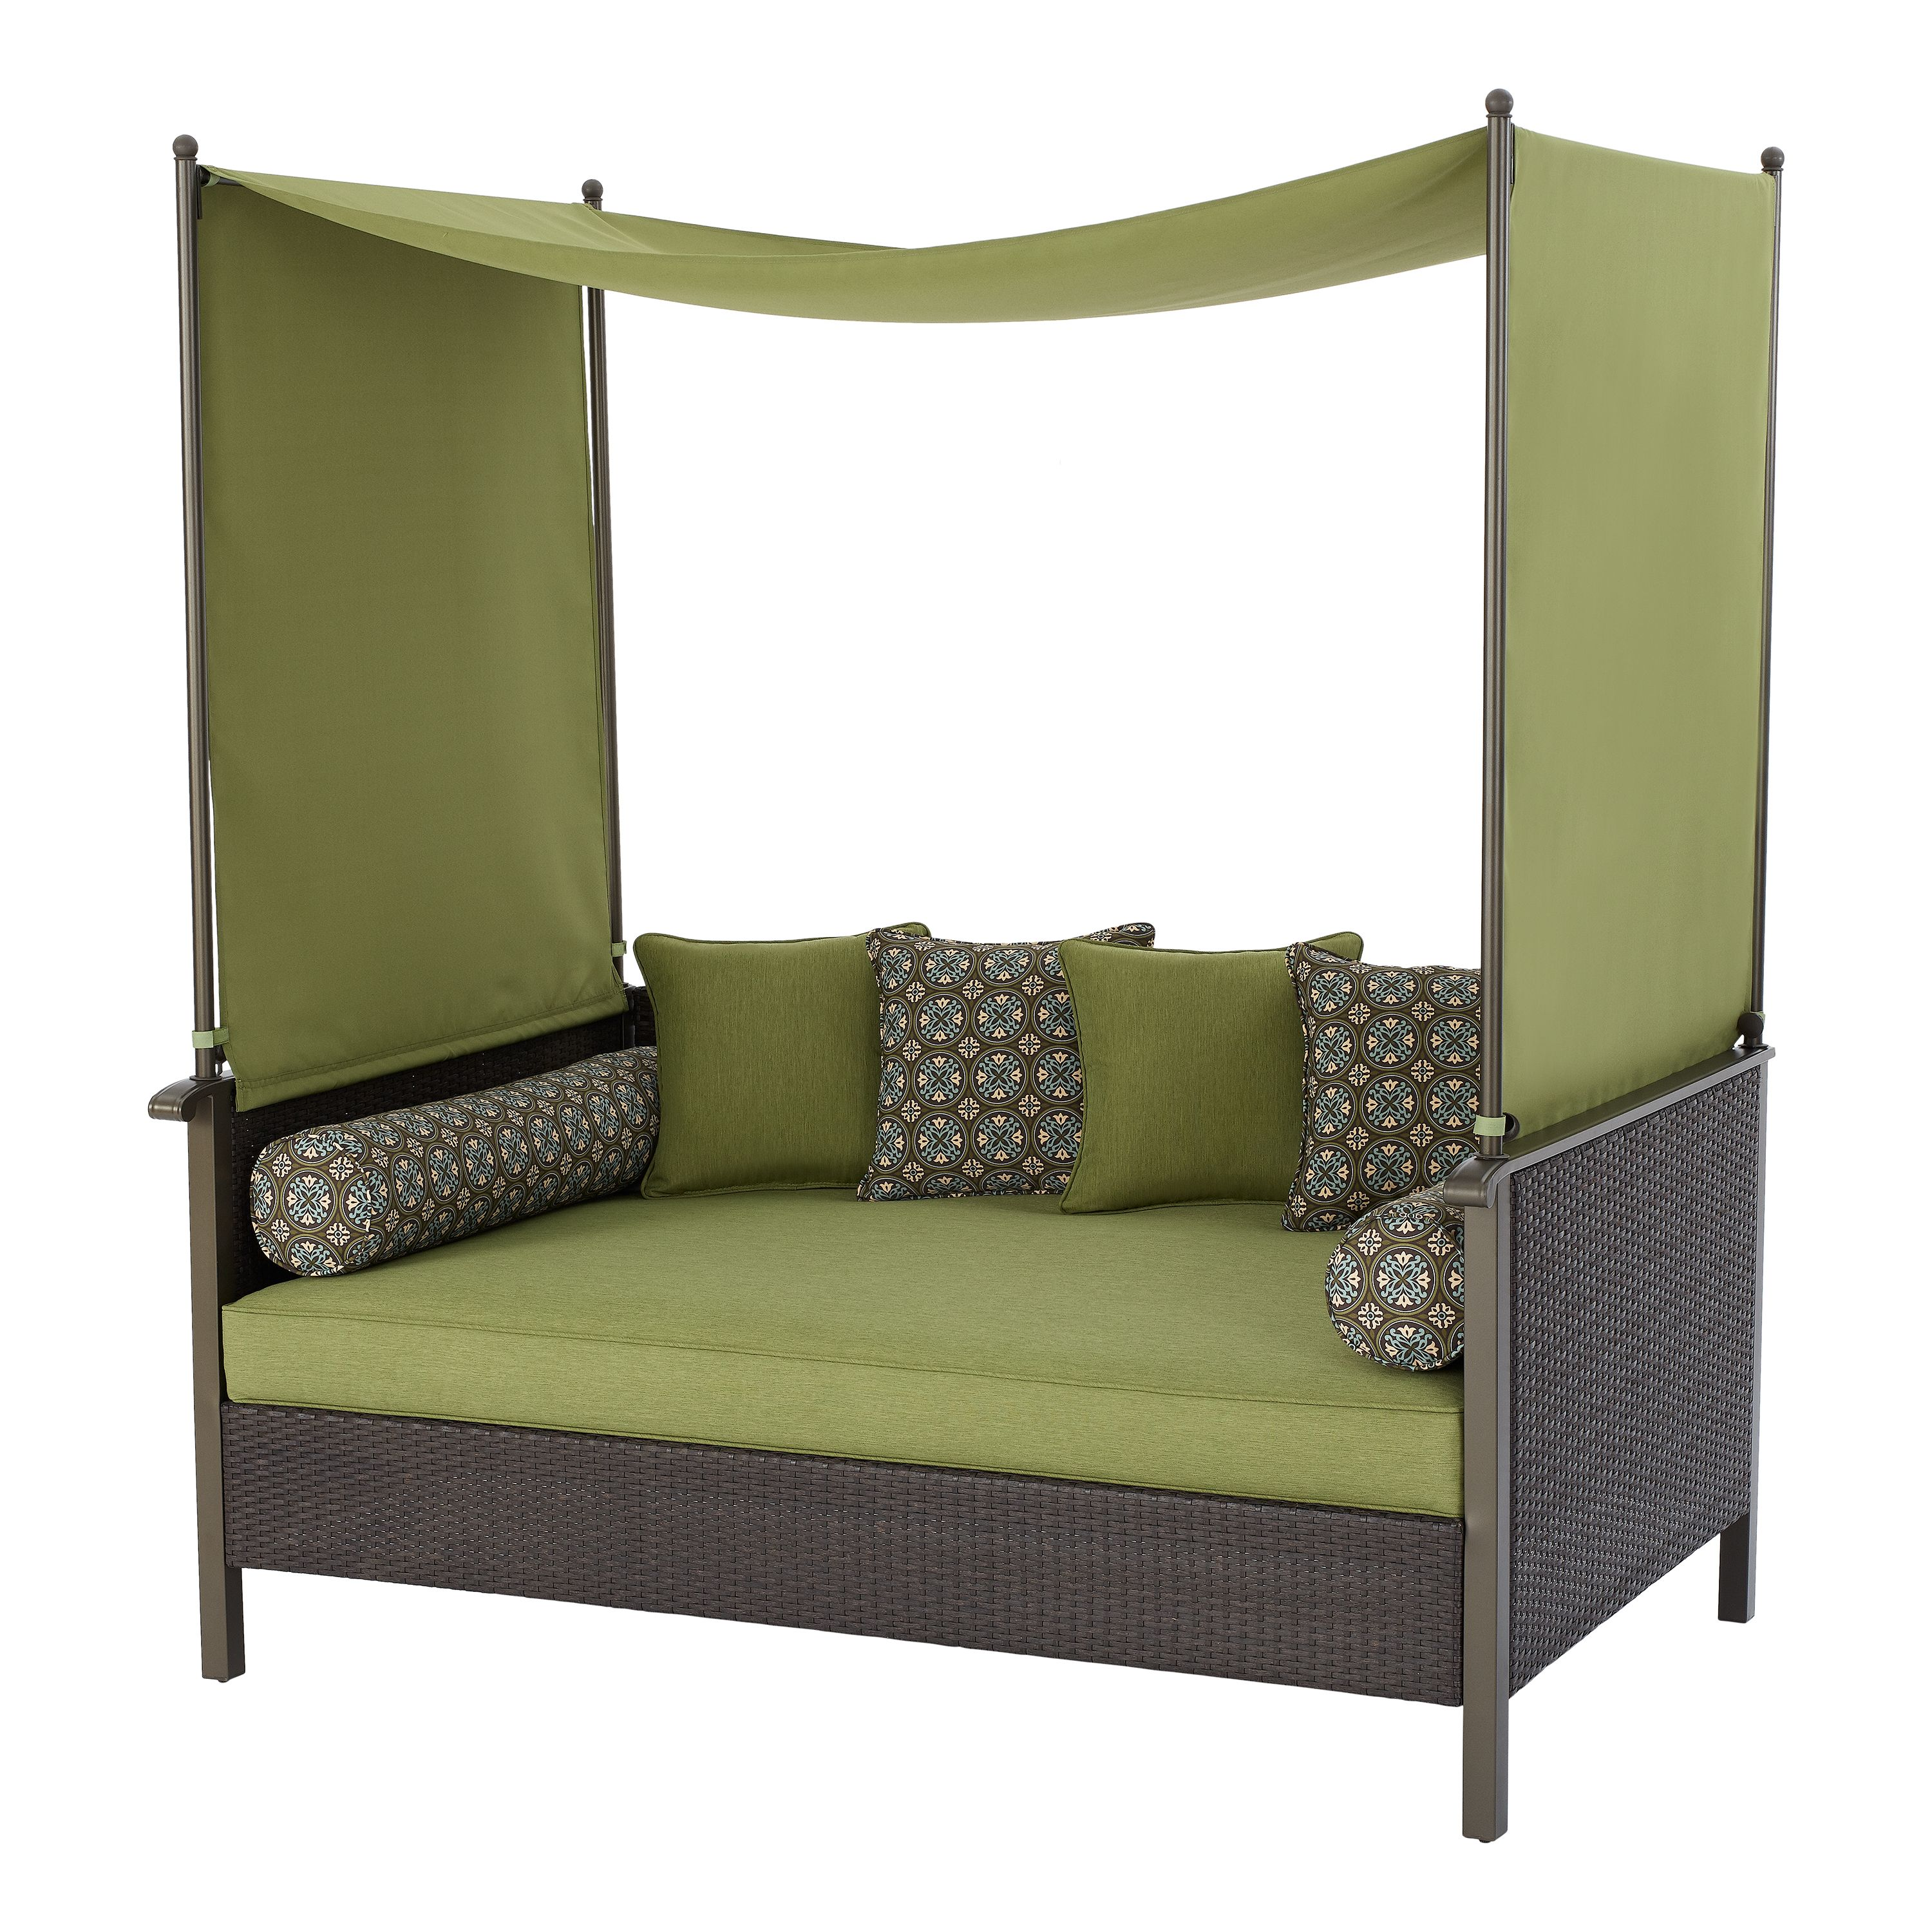 ccca5a4ab5380c7830730e2a453931f9 - Better Homes And Gardens Providence Outdoor Daybed